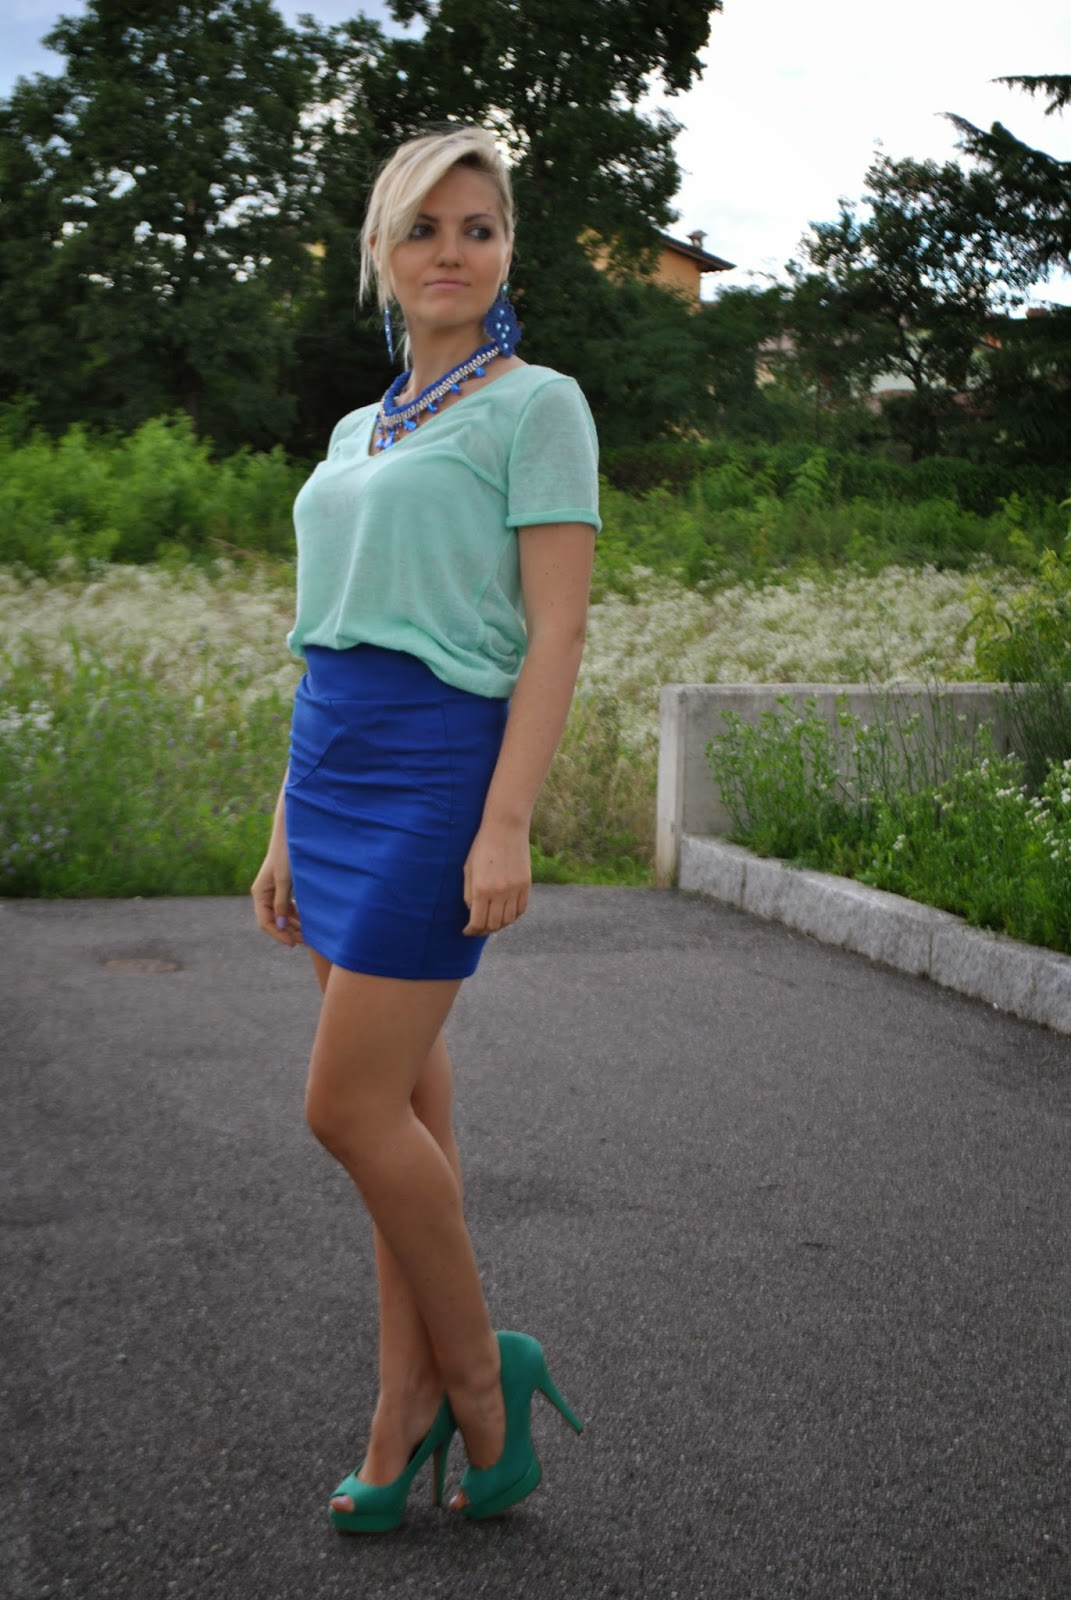 outfit blu e verde acqua orecchini blu con zirconi blu collana majique con pietre blu scarpe verdi tacchi verdi come abbinare le scarpe verdi fashion blogger italiane fashion blogger bionde outfit luglio 2014outfit estivi outfit estate 2014 outfit di mariafelicia magno fashion blogger di colorblock by felym come abbinare gli accessori blu outfit con accessori blui